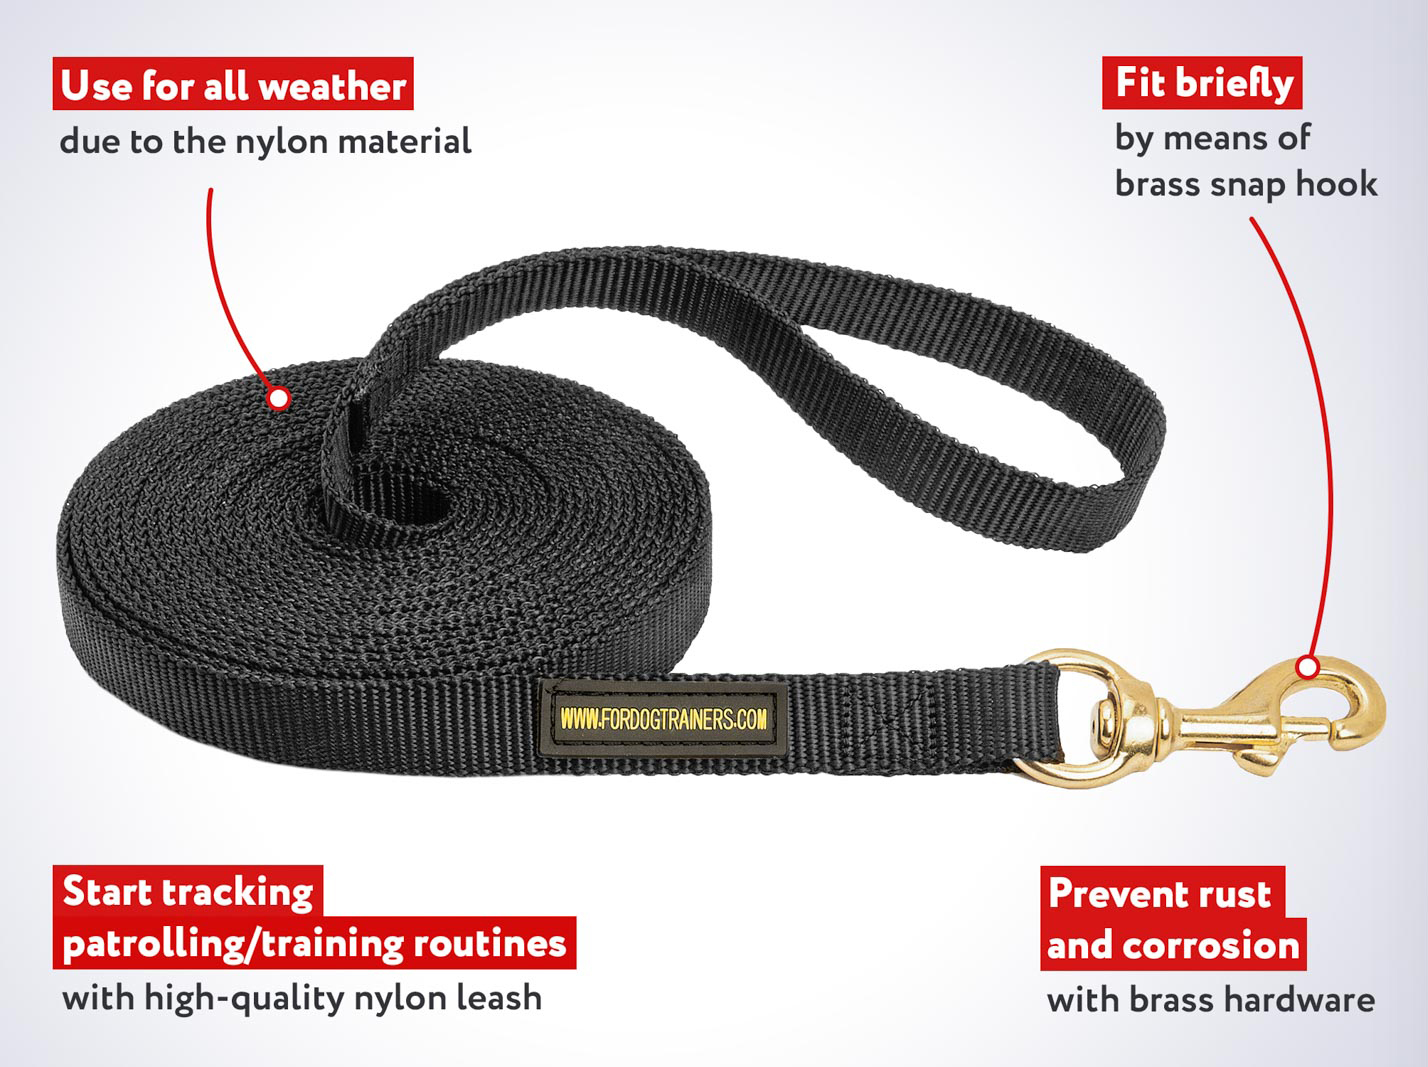 Practical Nylon Cane Corso Leash for Tracking and Walking